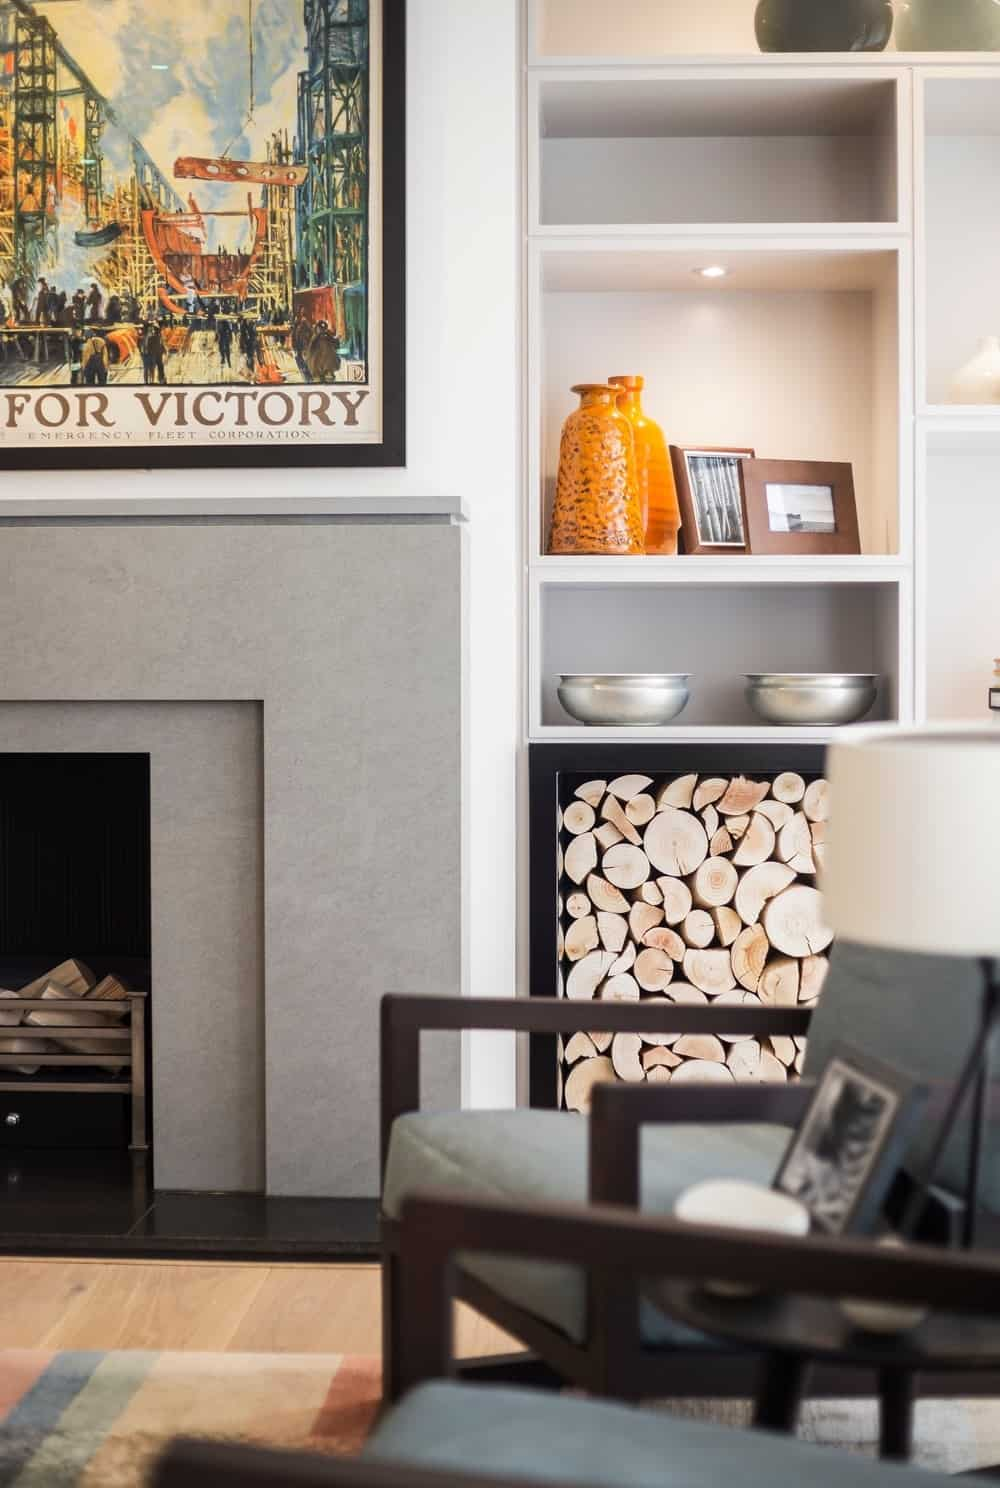 Contemporary living room with built-in shelves and fireplace along with wall decor. Photo credit: Photography / Styling : Rick Mccullagh / LLI Design